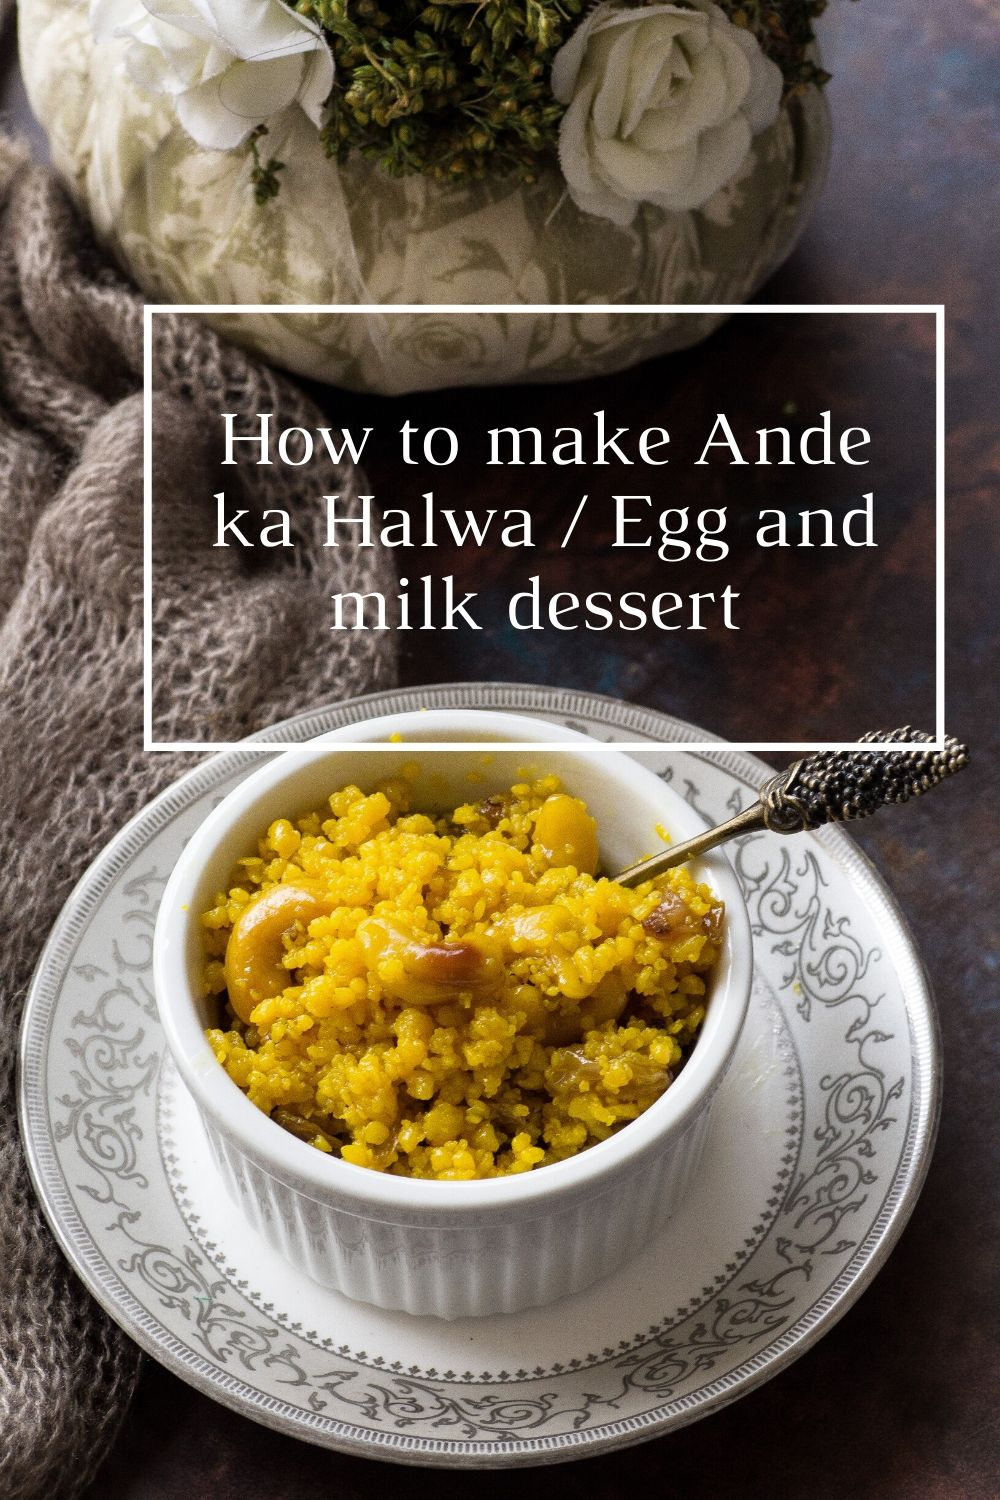 How to make Ande ka Halwa - 5